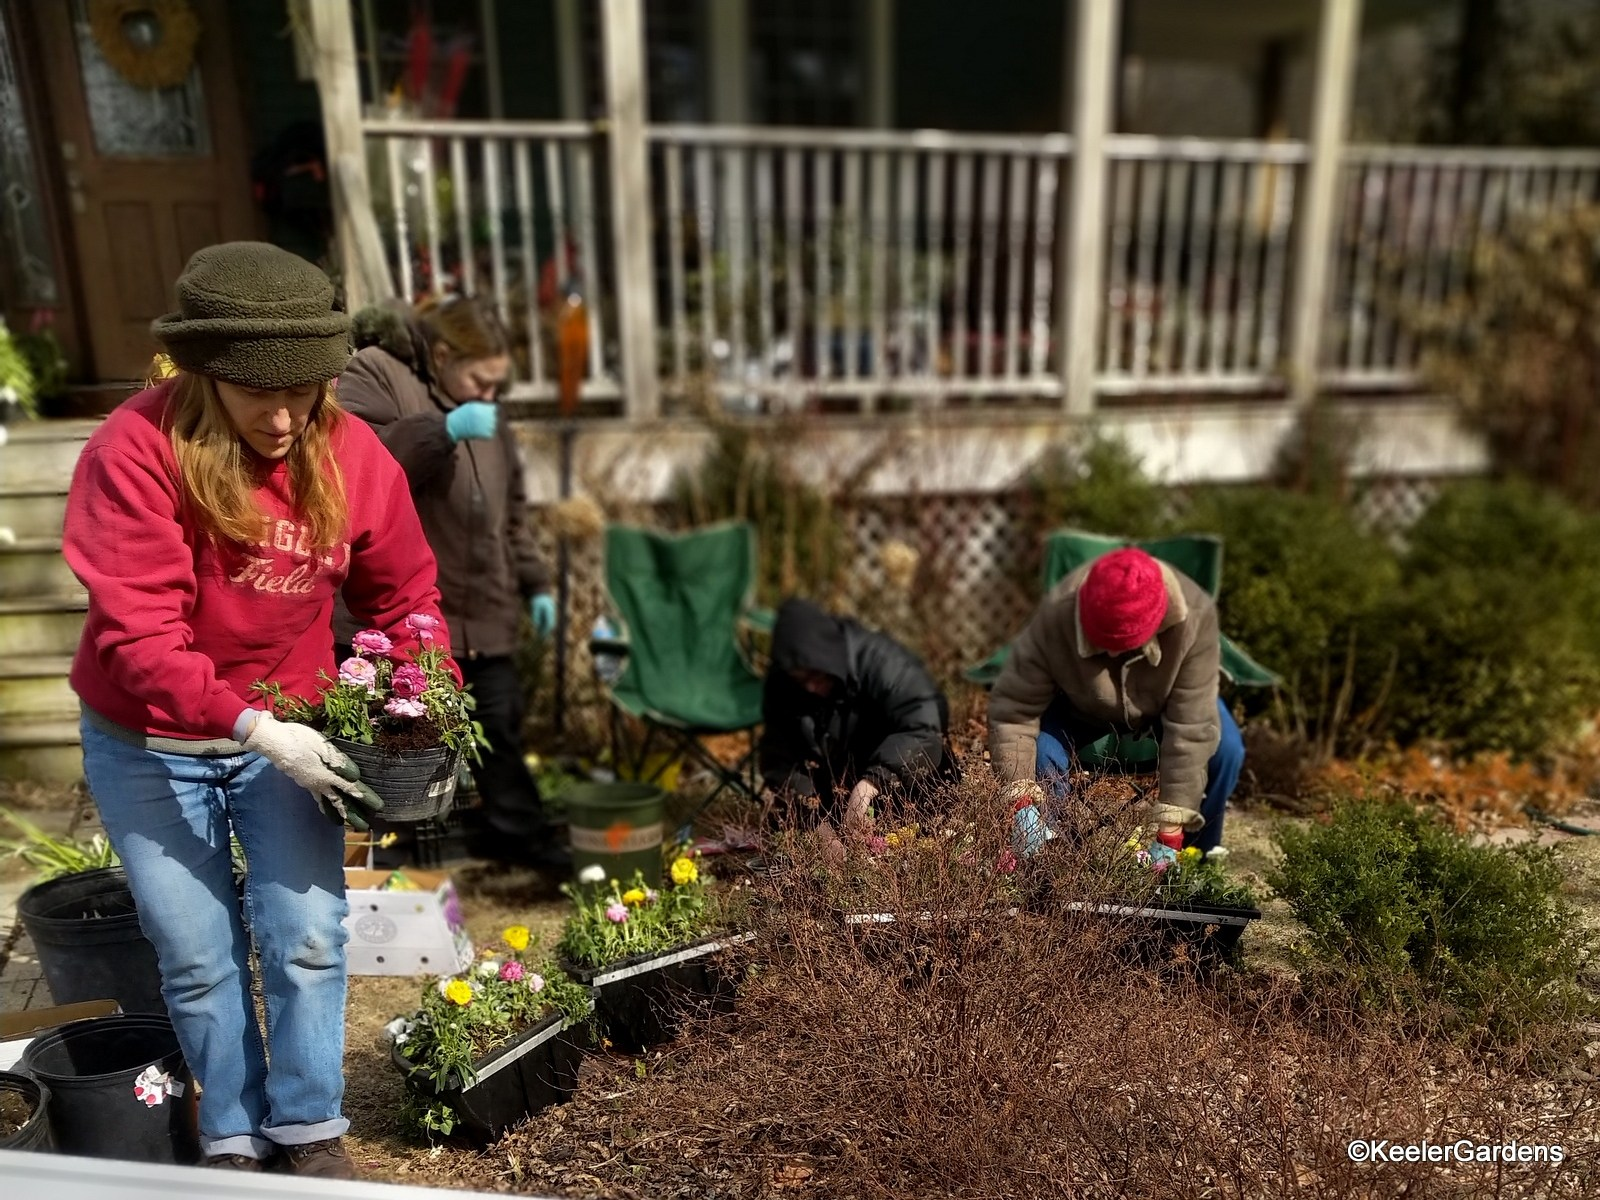 Gina, the lead horticulturist specialist, is in the foreground holding a ranunculus as volunteers sit and neel in the background over pots they are planting with bulbs and other plants.